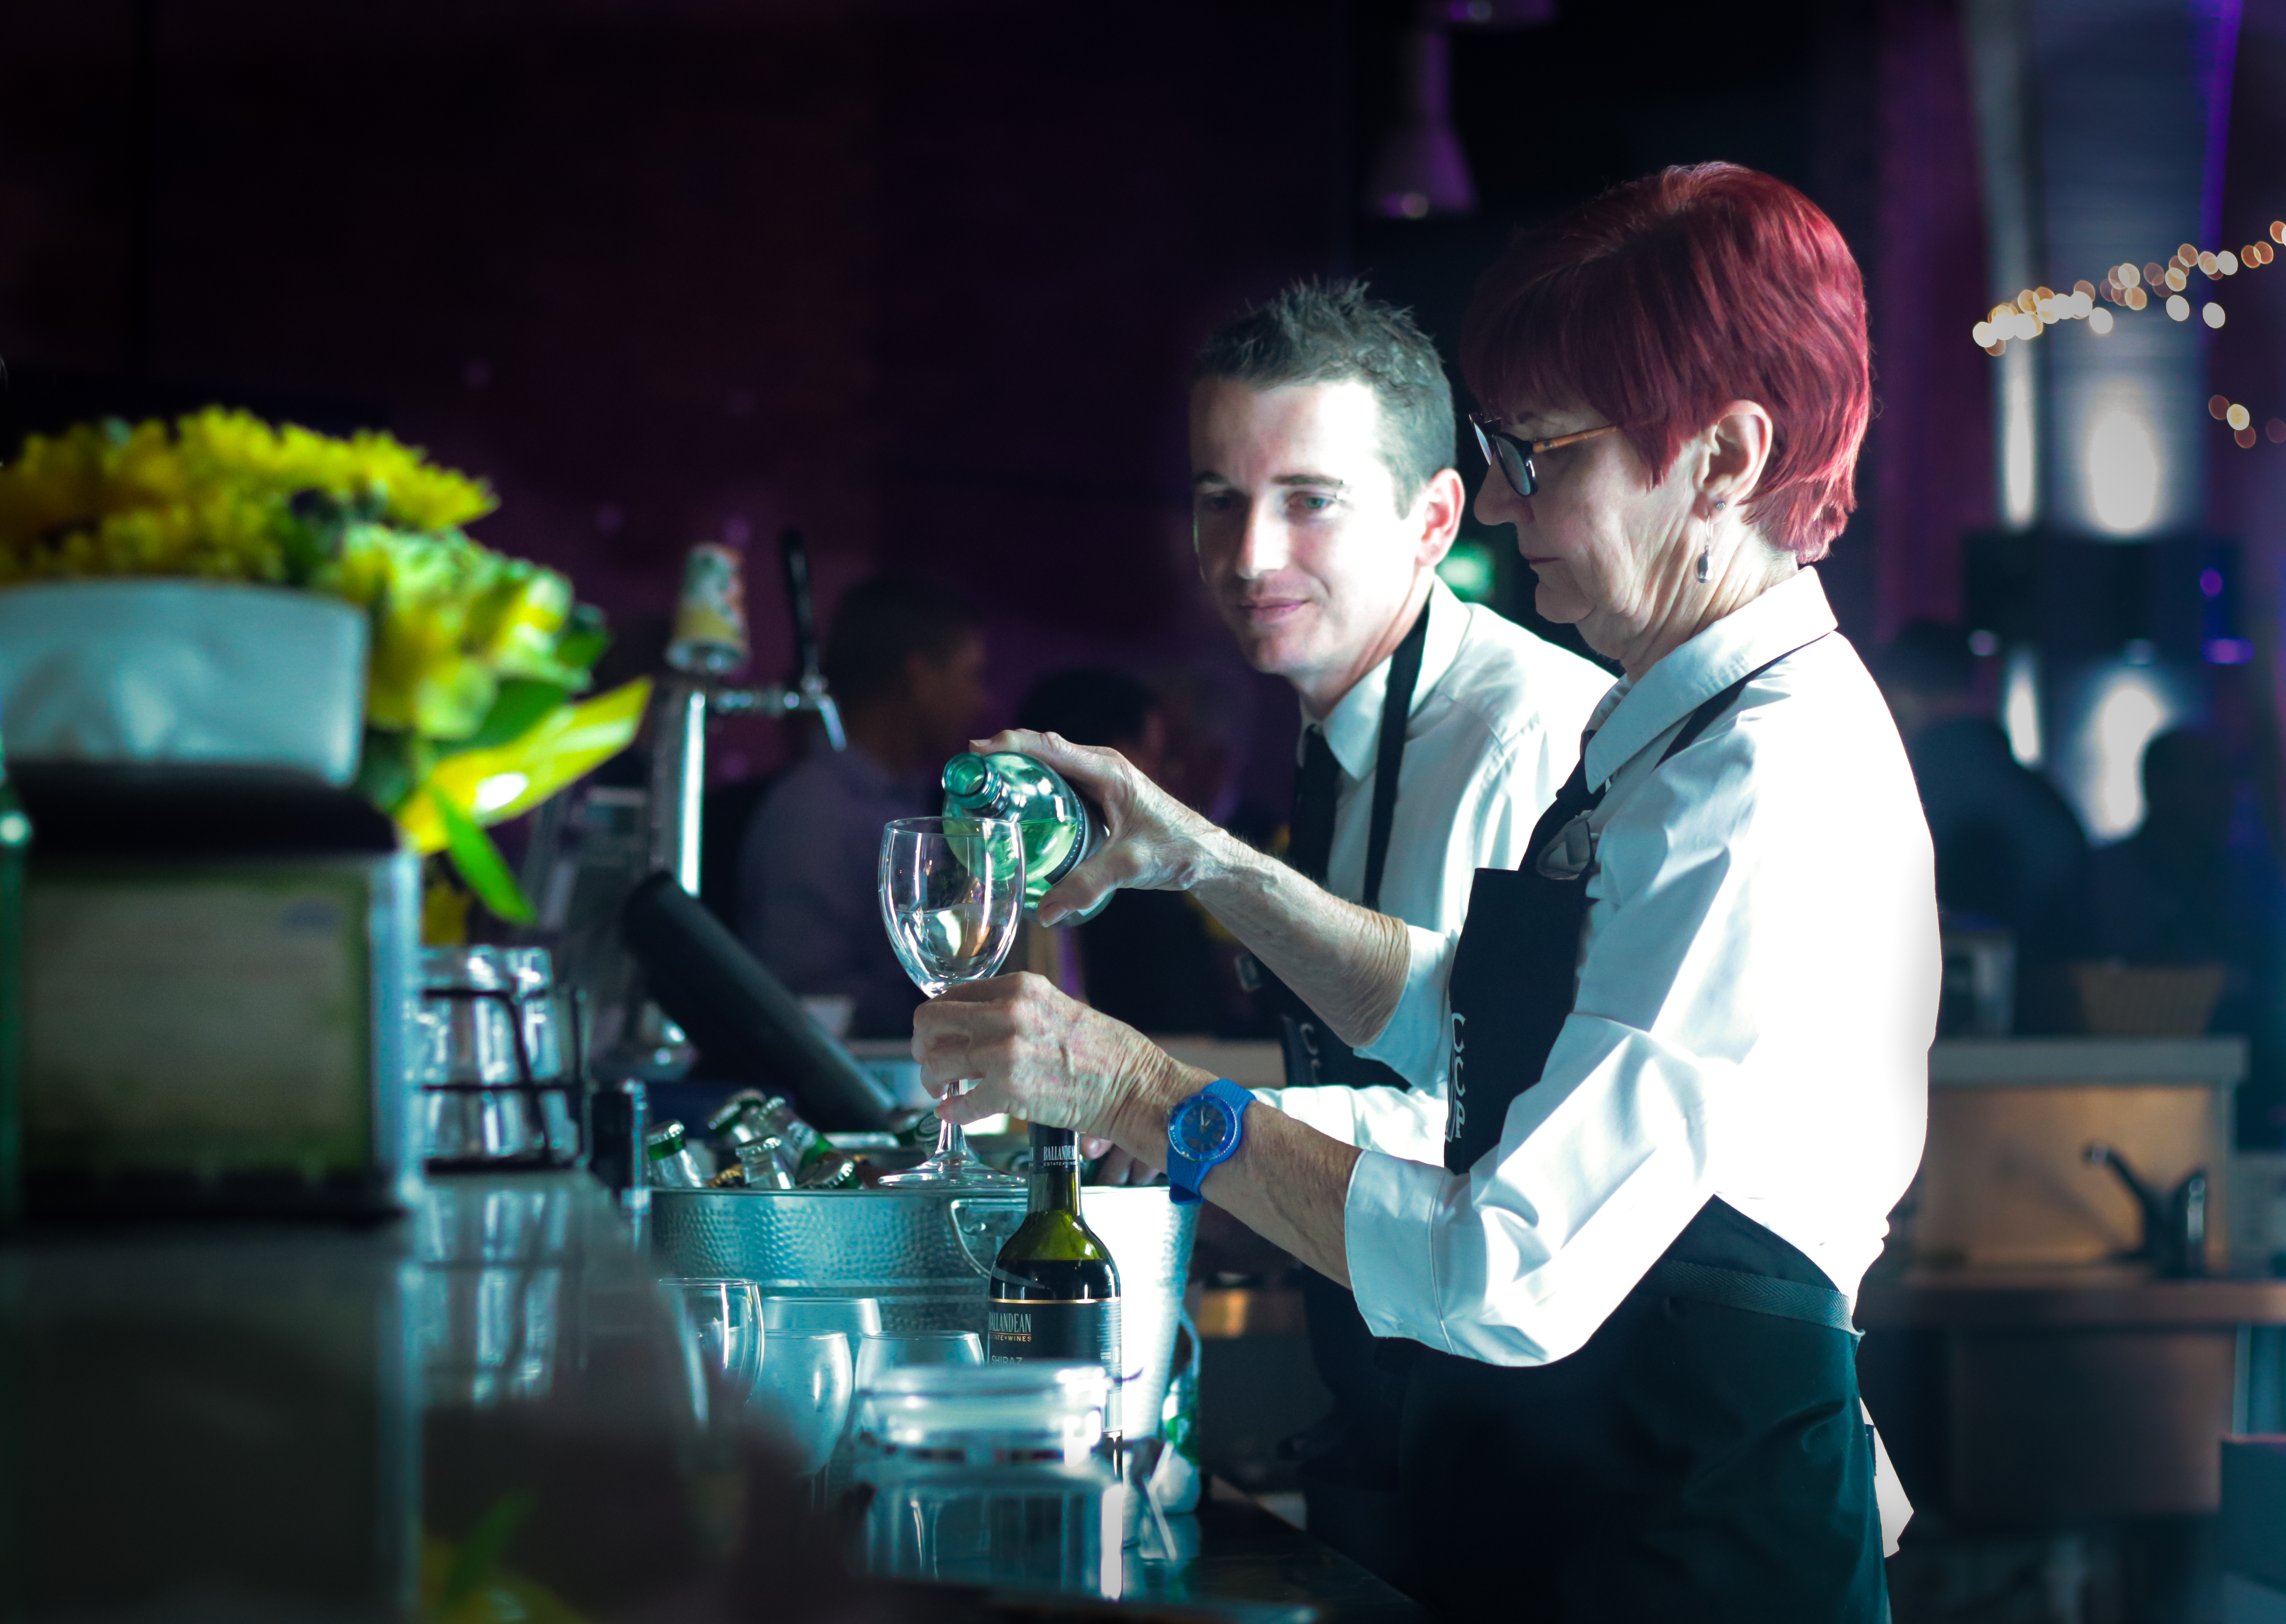 Bar staff pouring wine. Lady with red hair and man with eyebrow ring